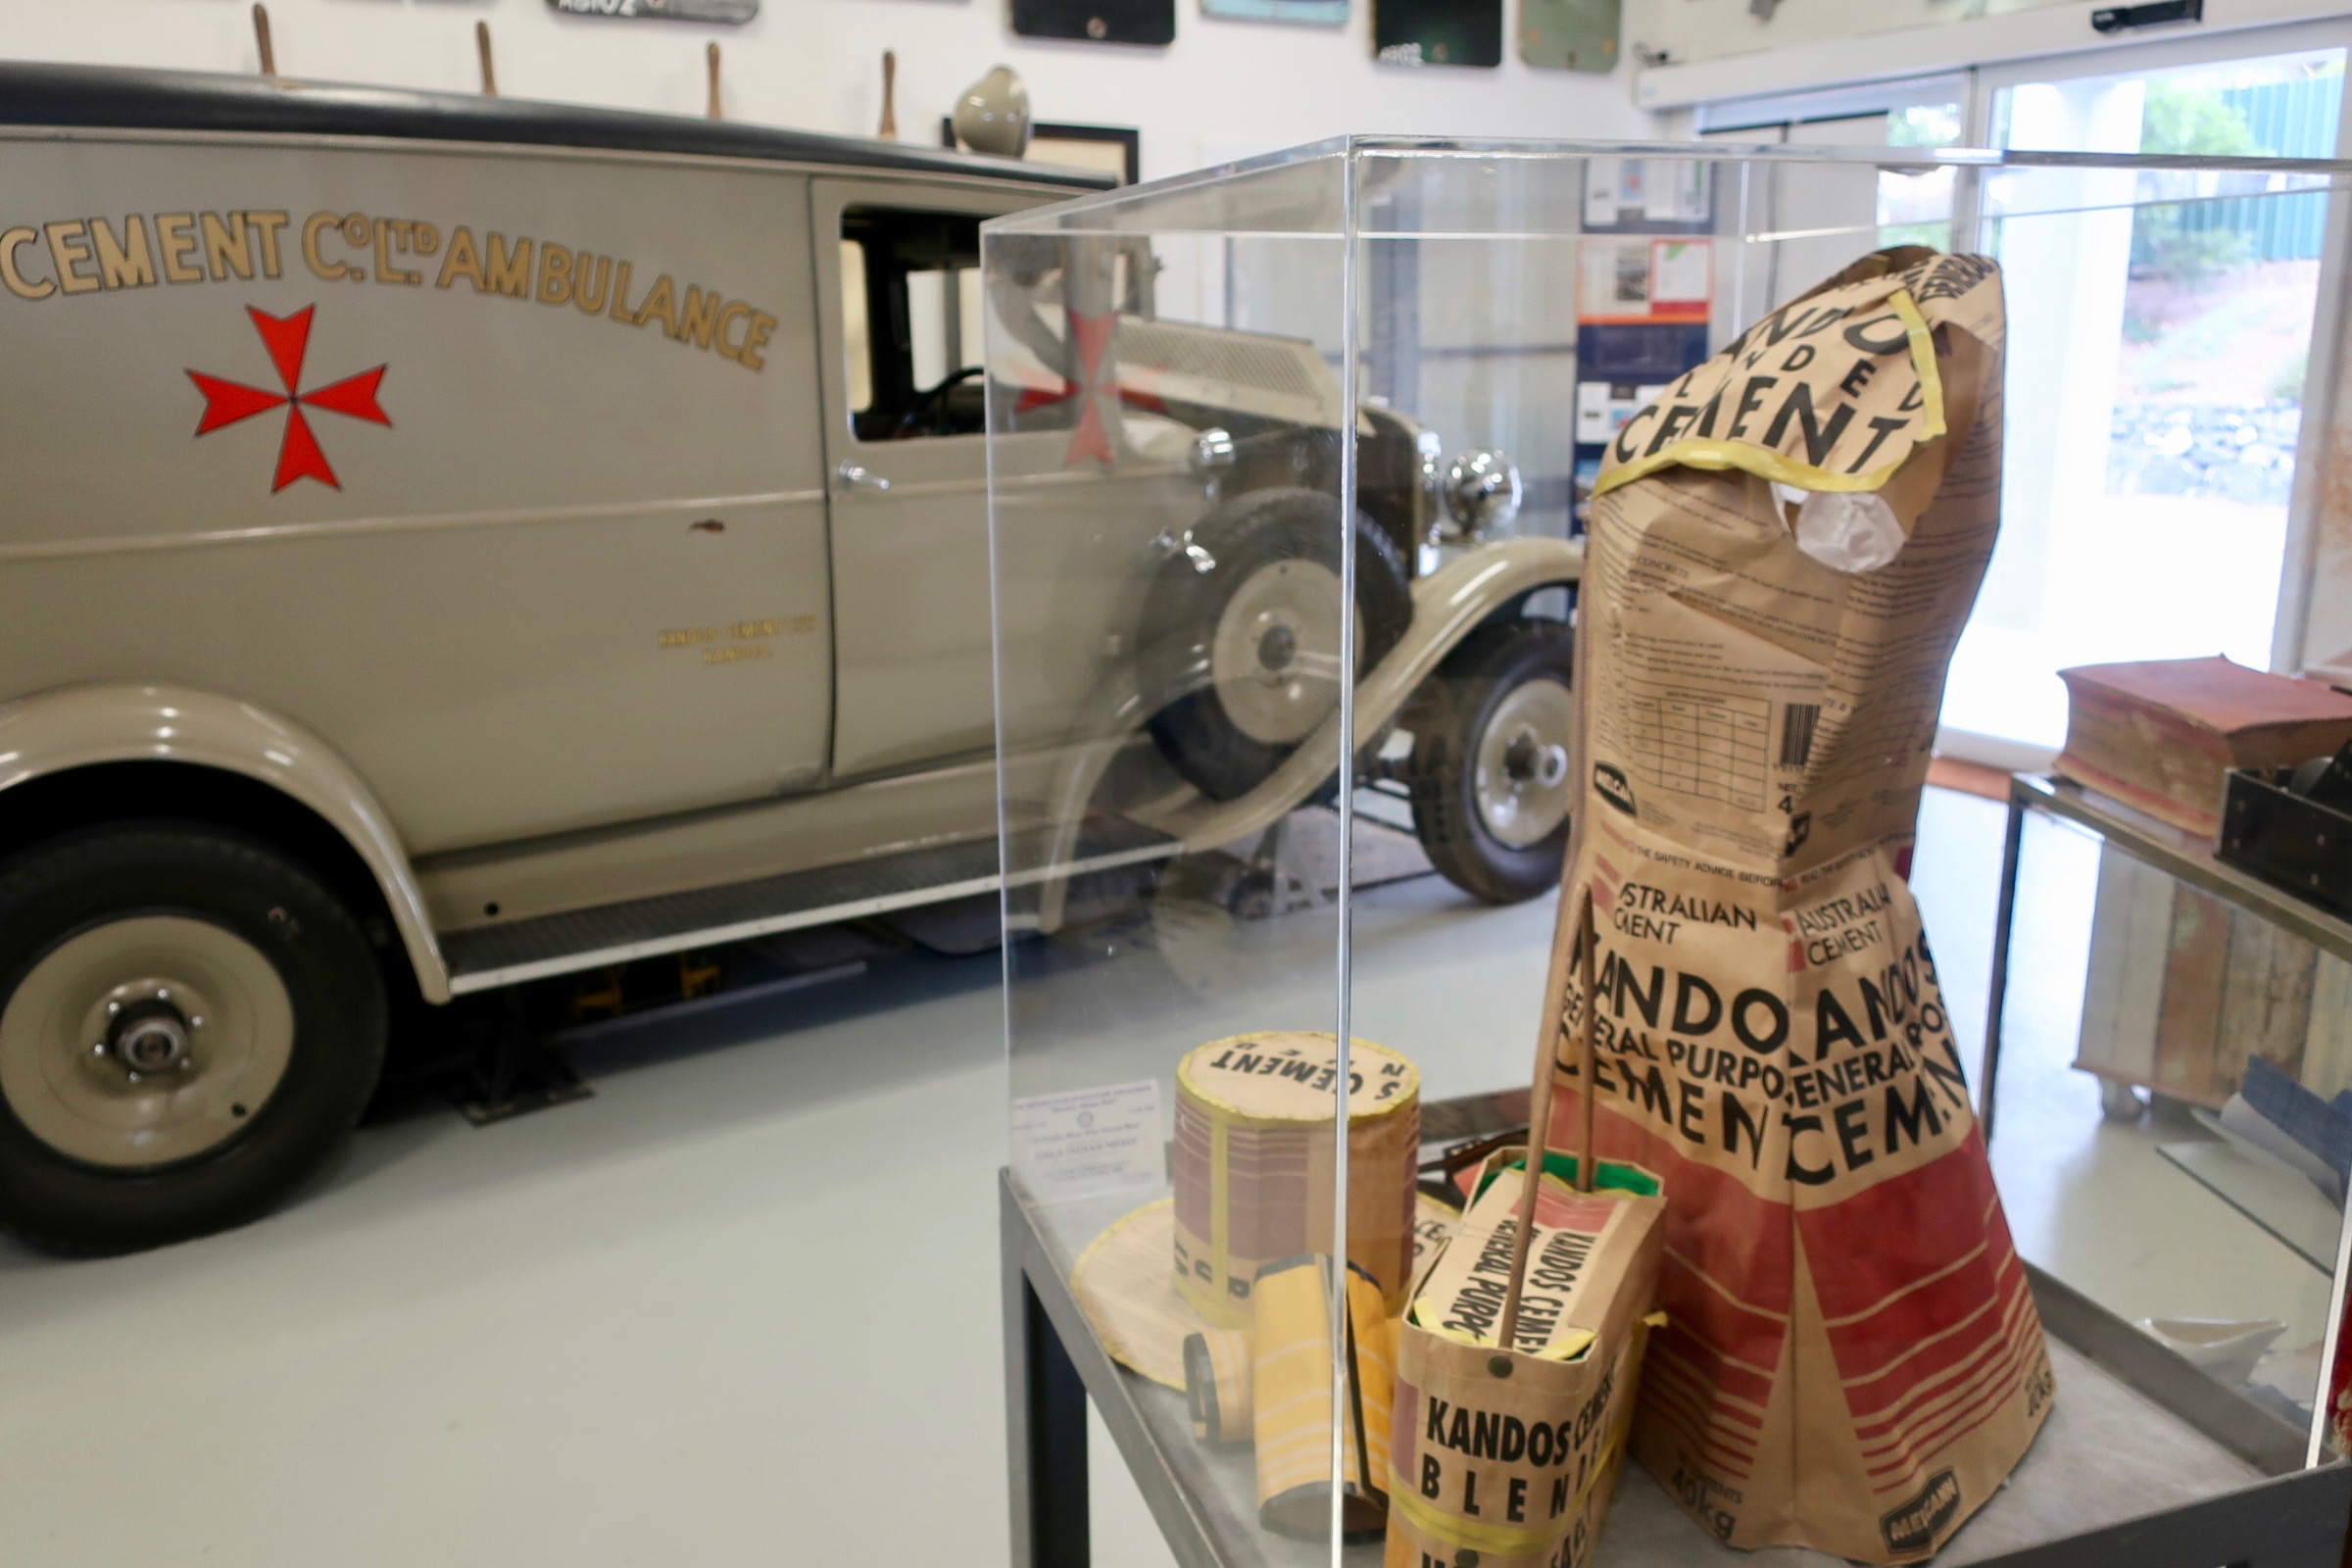 Cement bag dress display with 1930 Nash type 400 ambulance in background